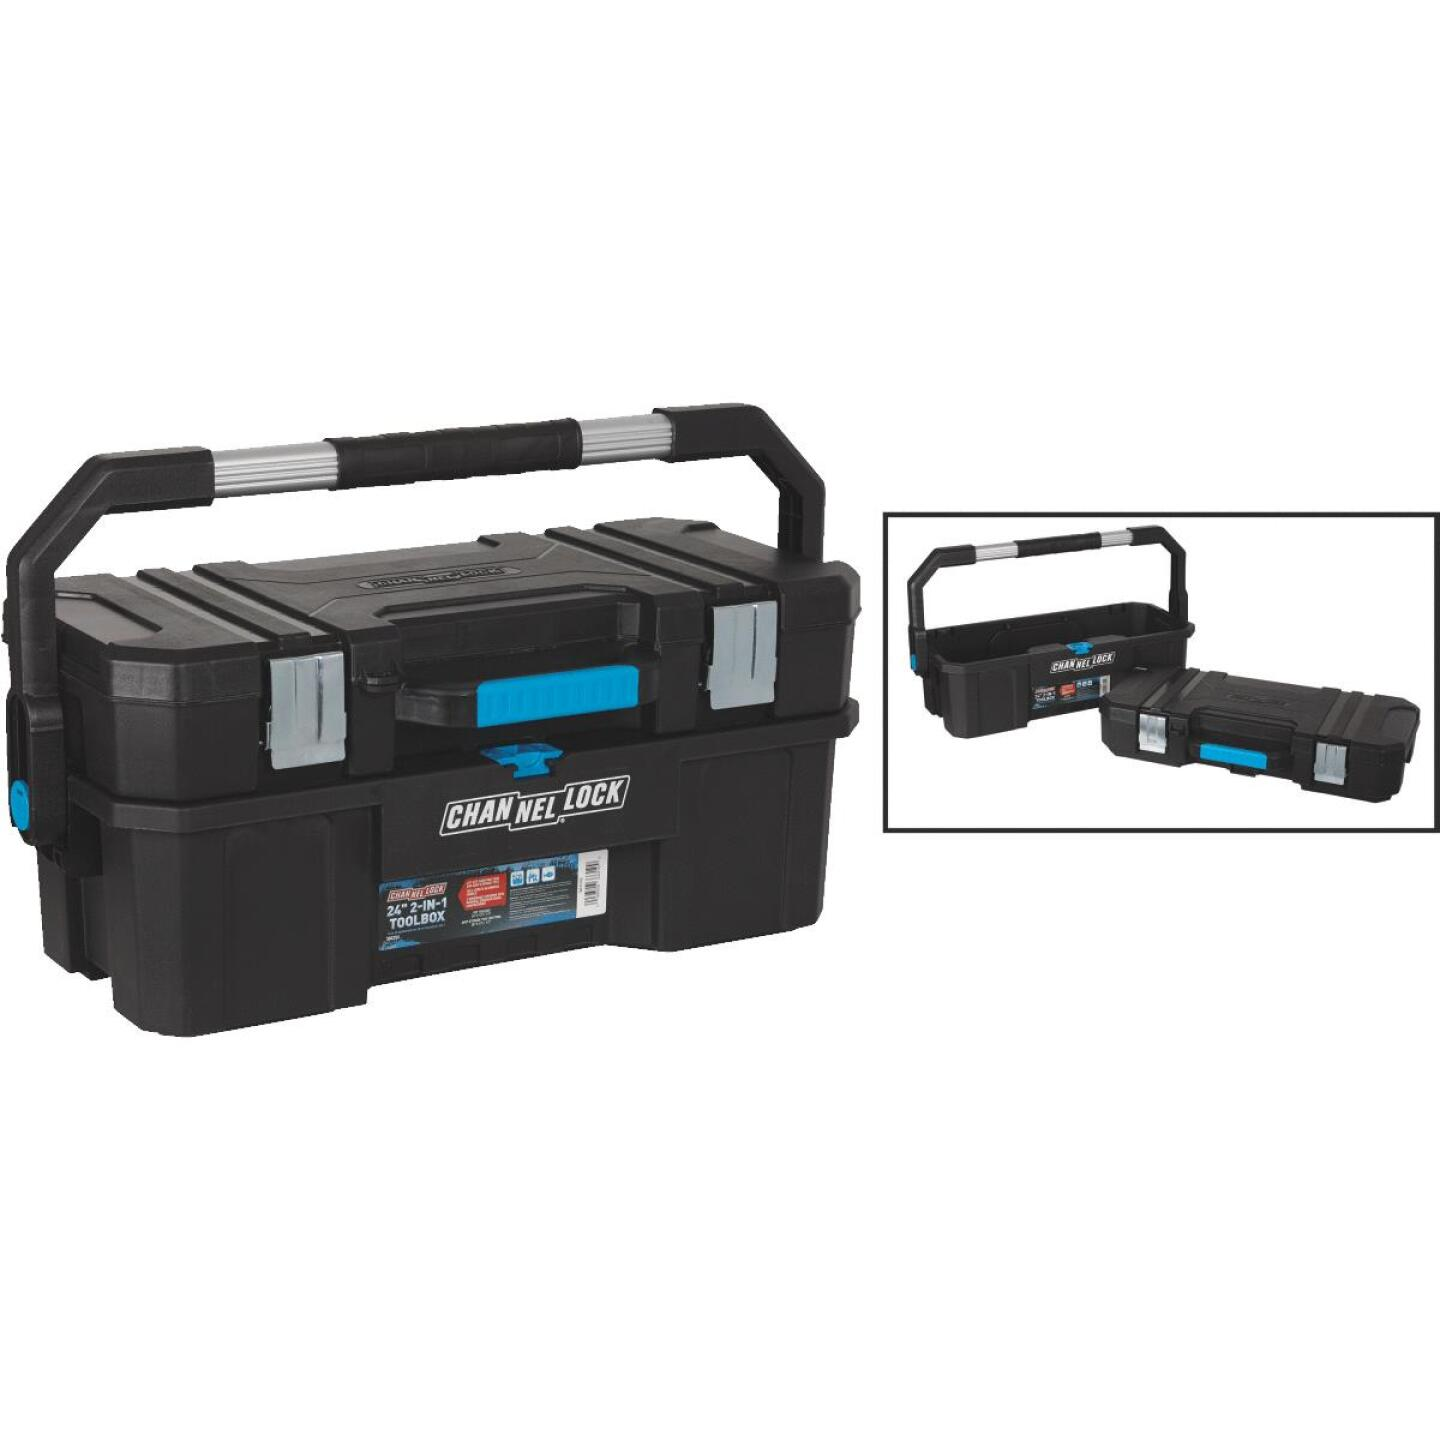 Channellock 24 In. 2-in-1 Toolbox Image 1